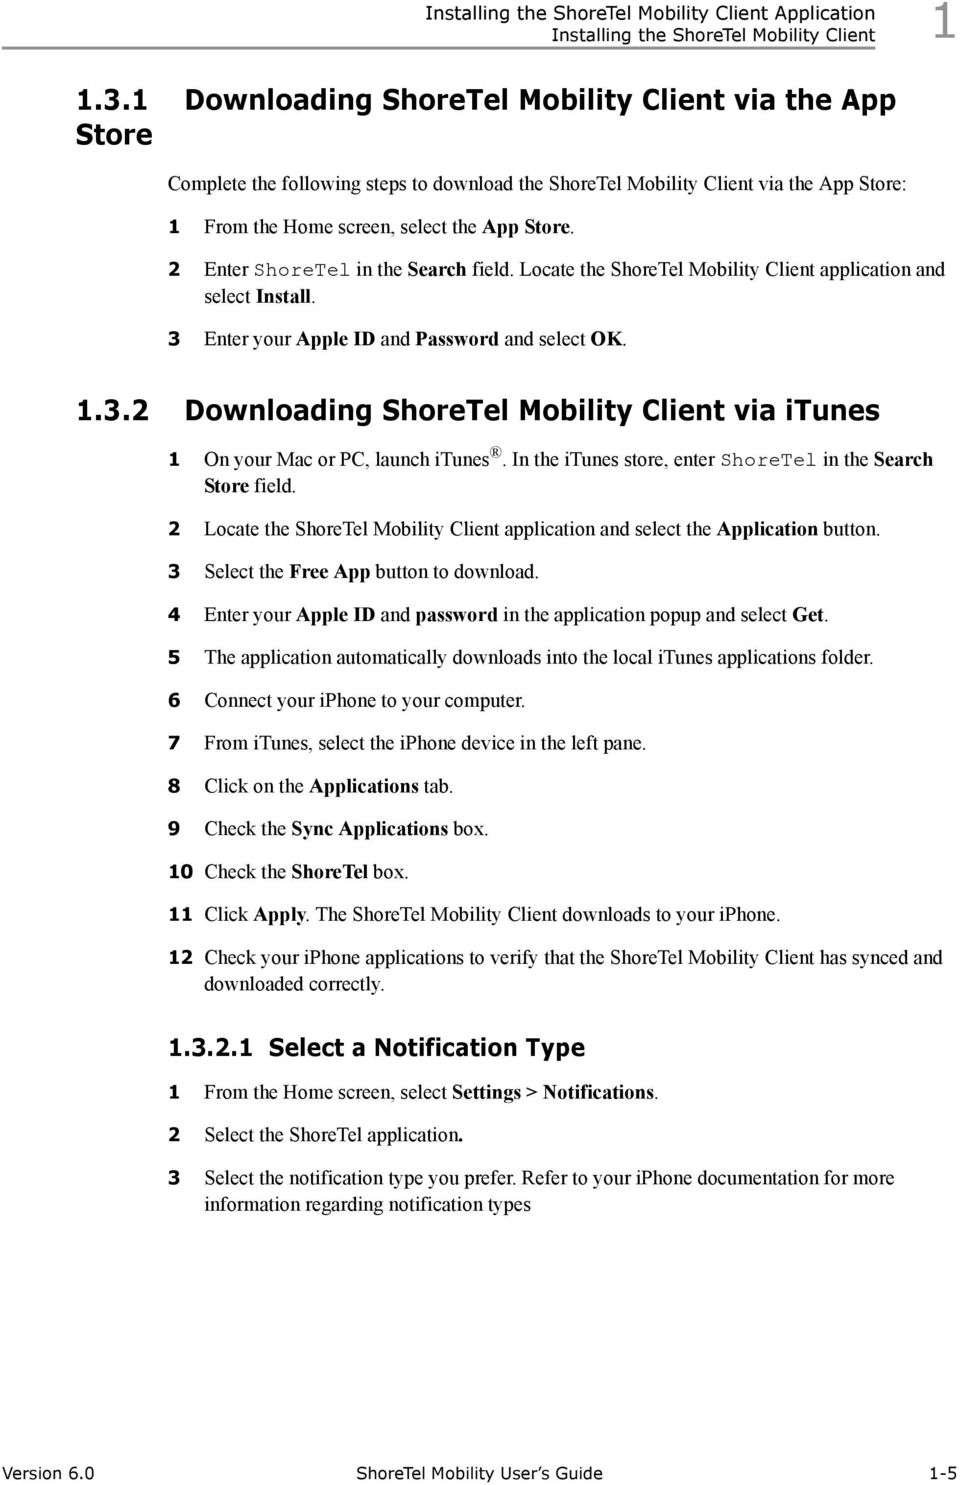 2 Enter ShoreTel in the Search field. Locate the ShoreTel Mobility Client application and select Install. 3 Enter your Apple ID and Password and select OK. 1.3.2 Downloading ShoreTel Mobility Client via itunes 1 On your Mac or PC, launch itunes.